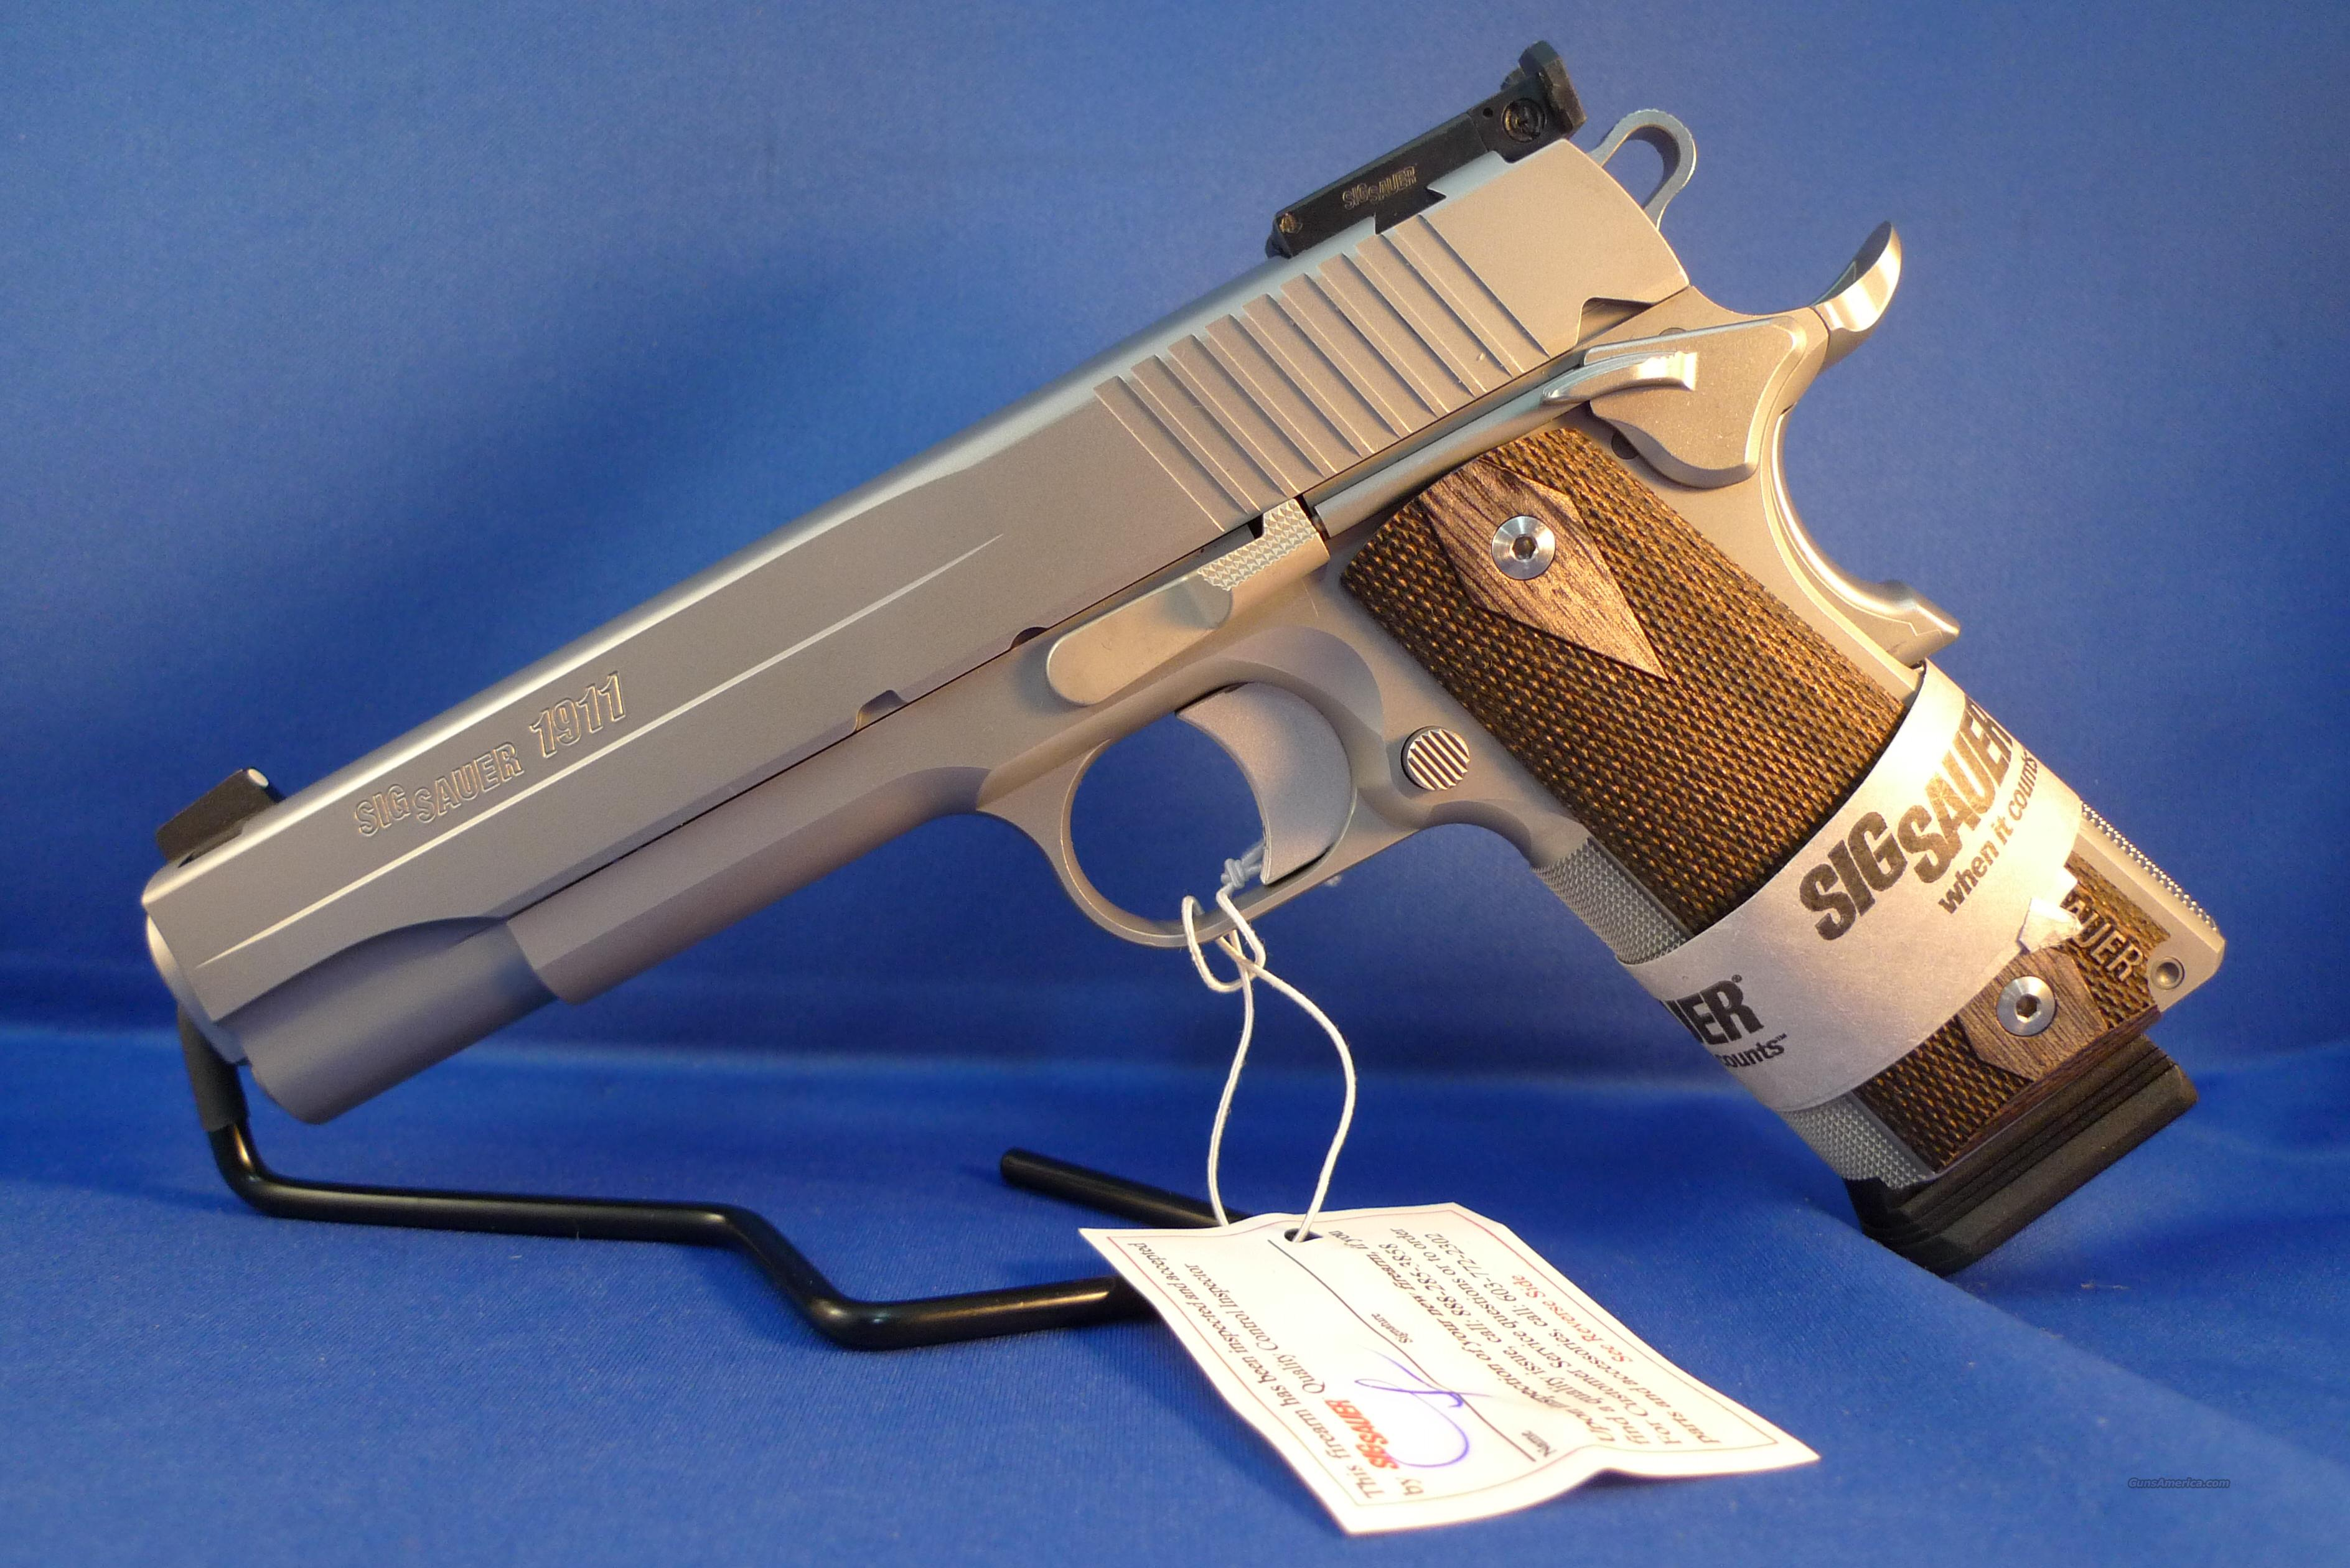 Sig Sauer 1911 Target Stainless .45ACP pistol  Guns > Pistols > Sig - Sauer/Sigarms Pistols > 1911